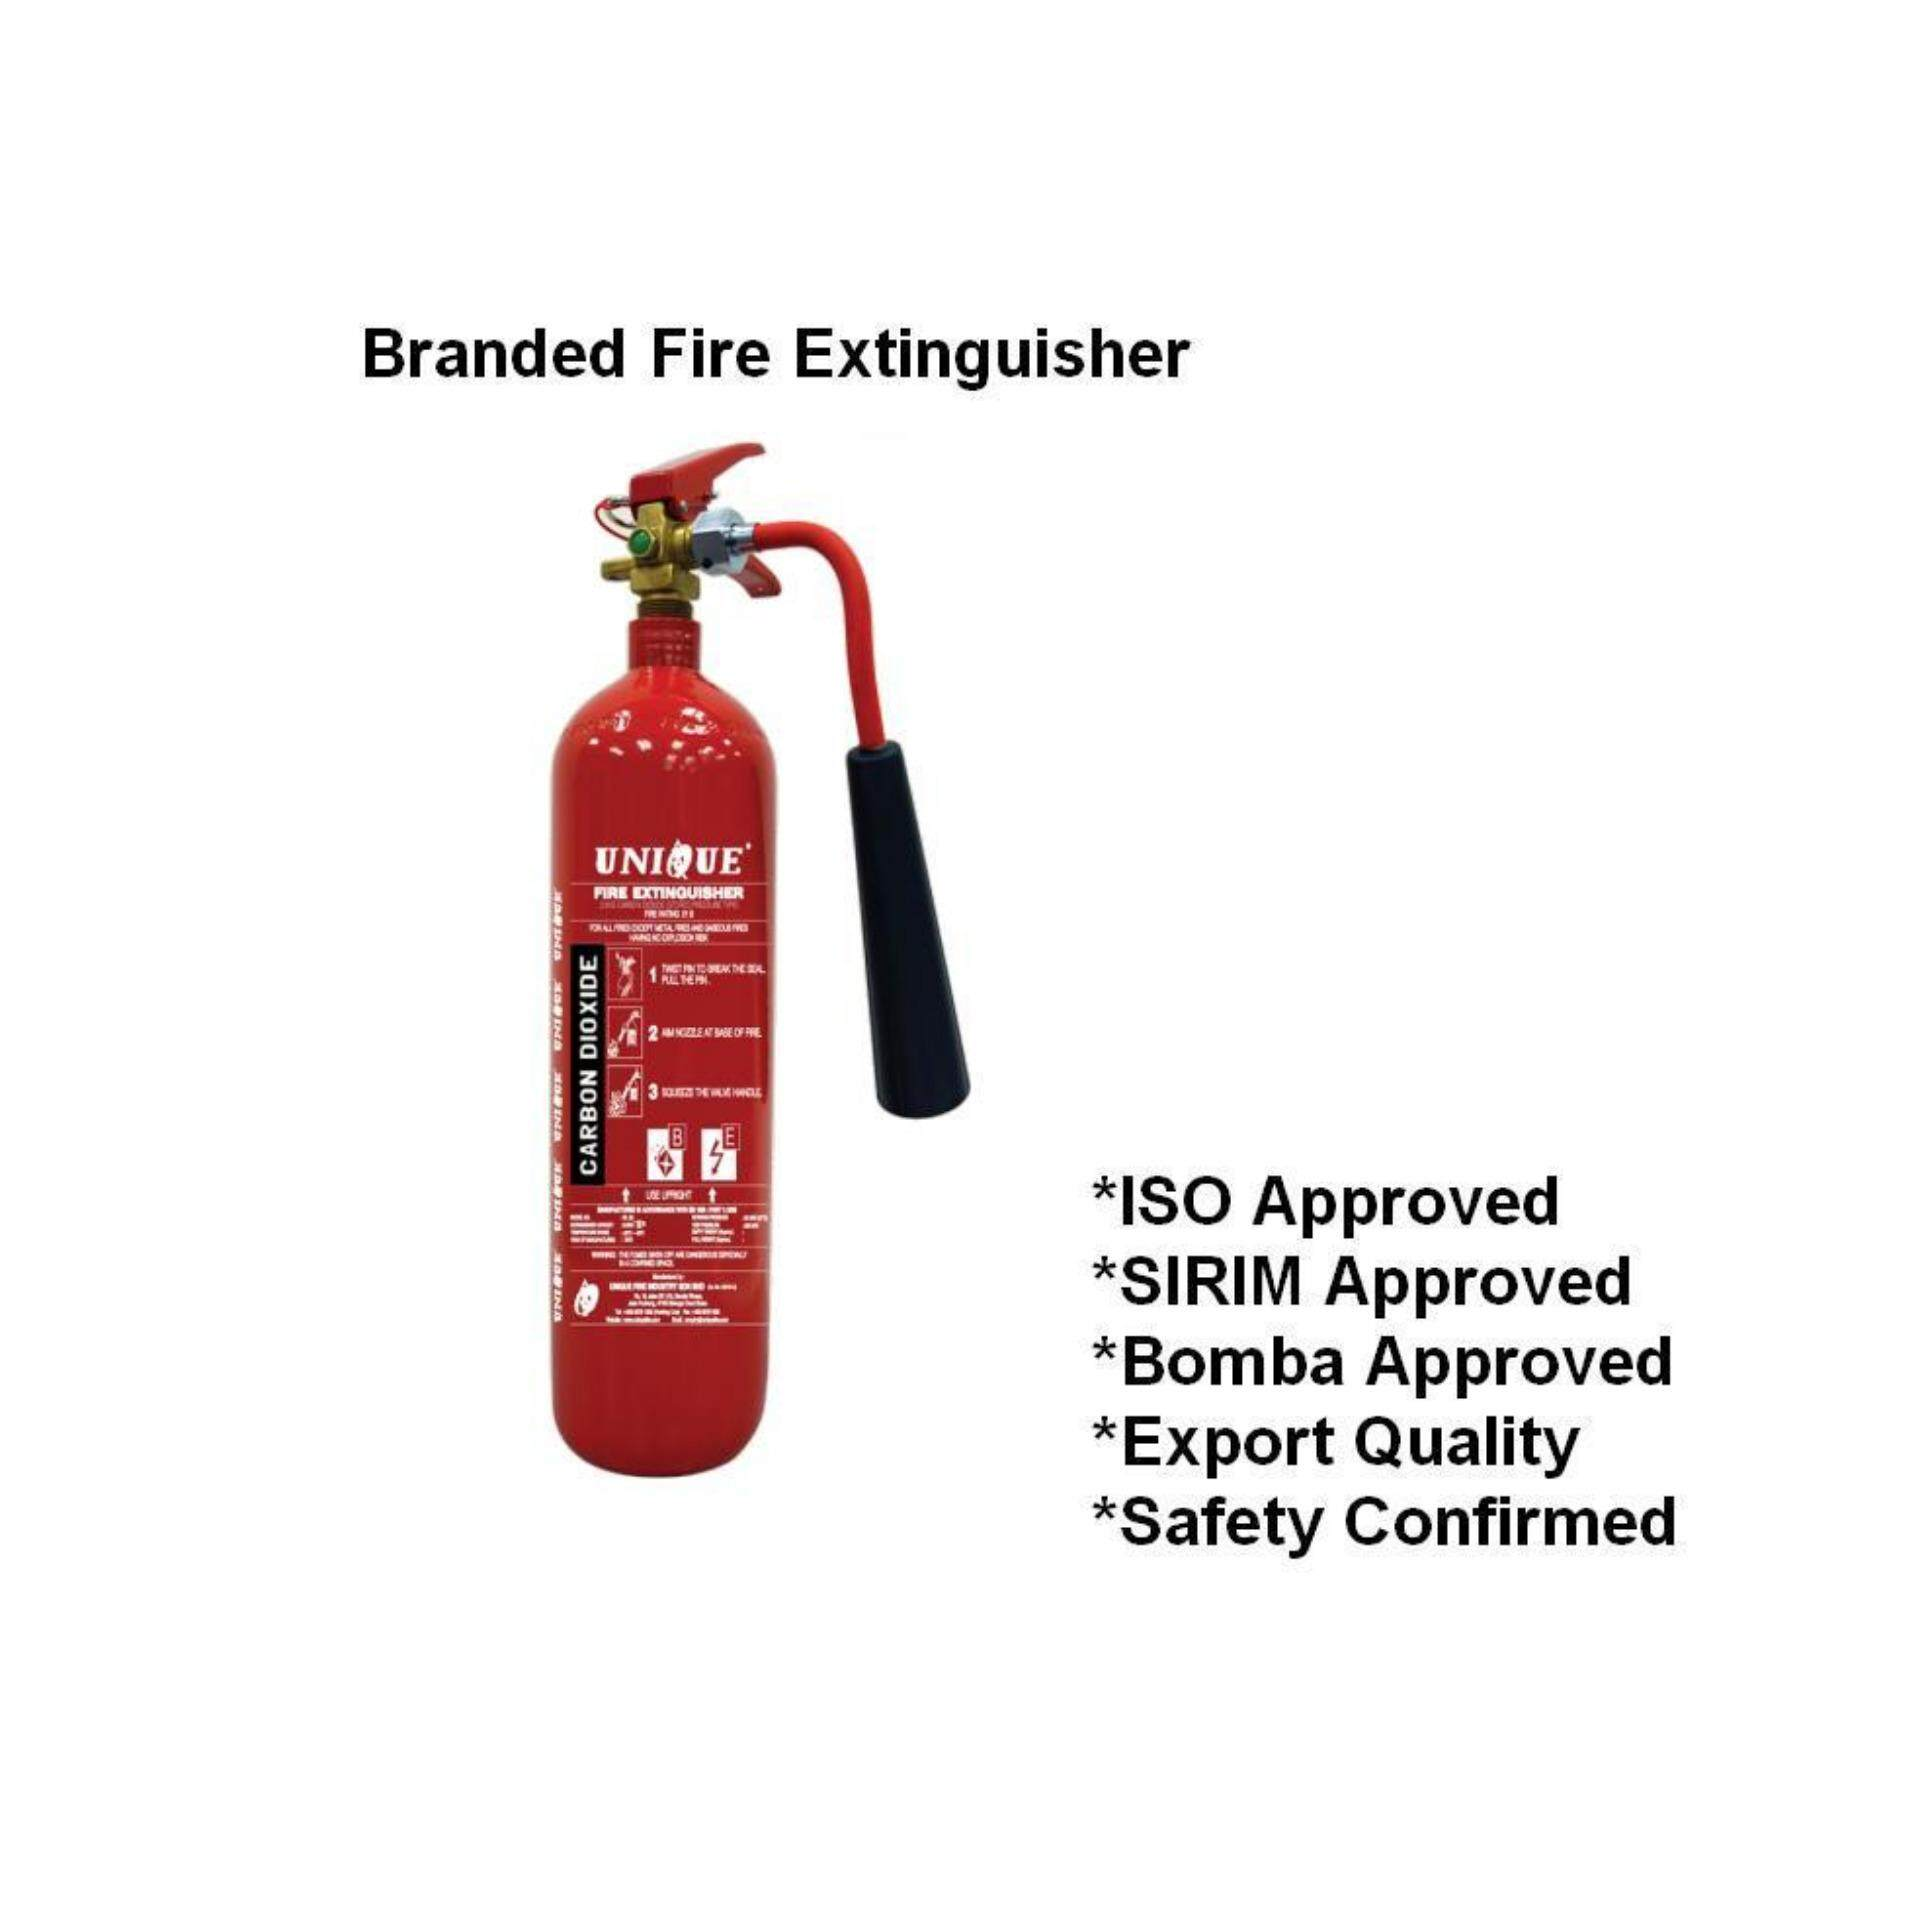 2kg CO2 branded fire extinguisher for house kitchen and electrical ...